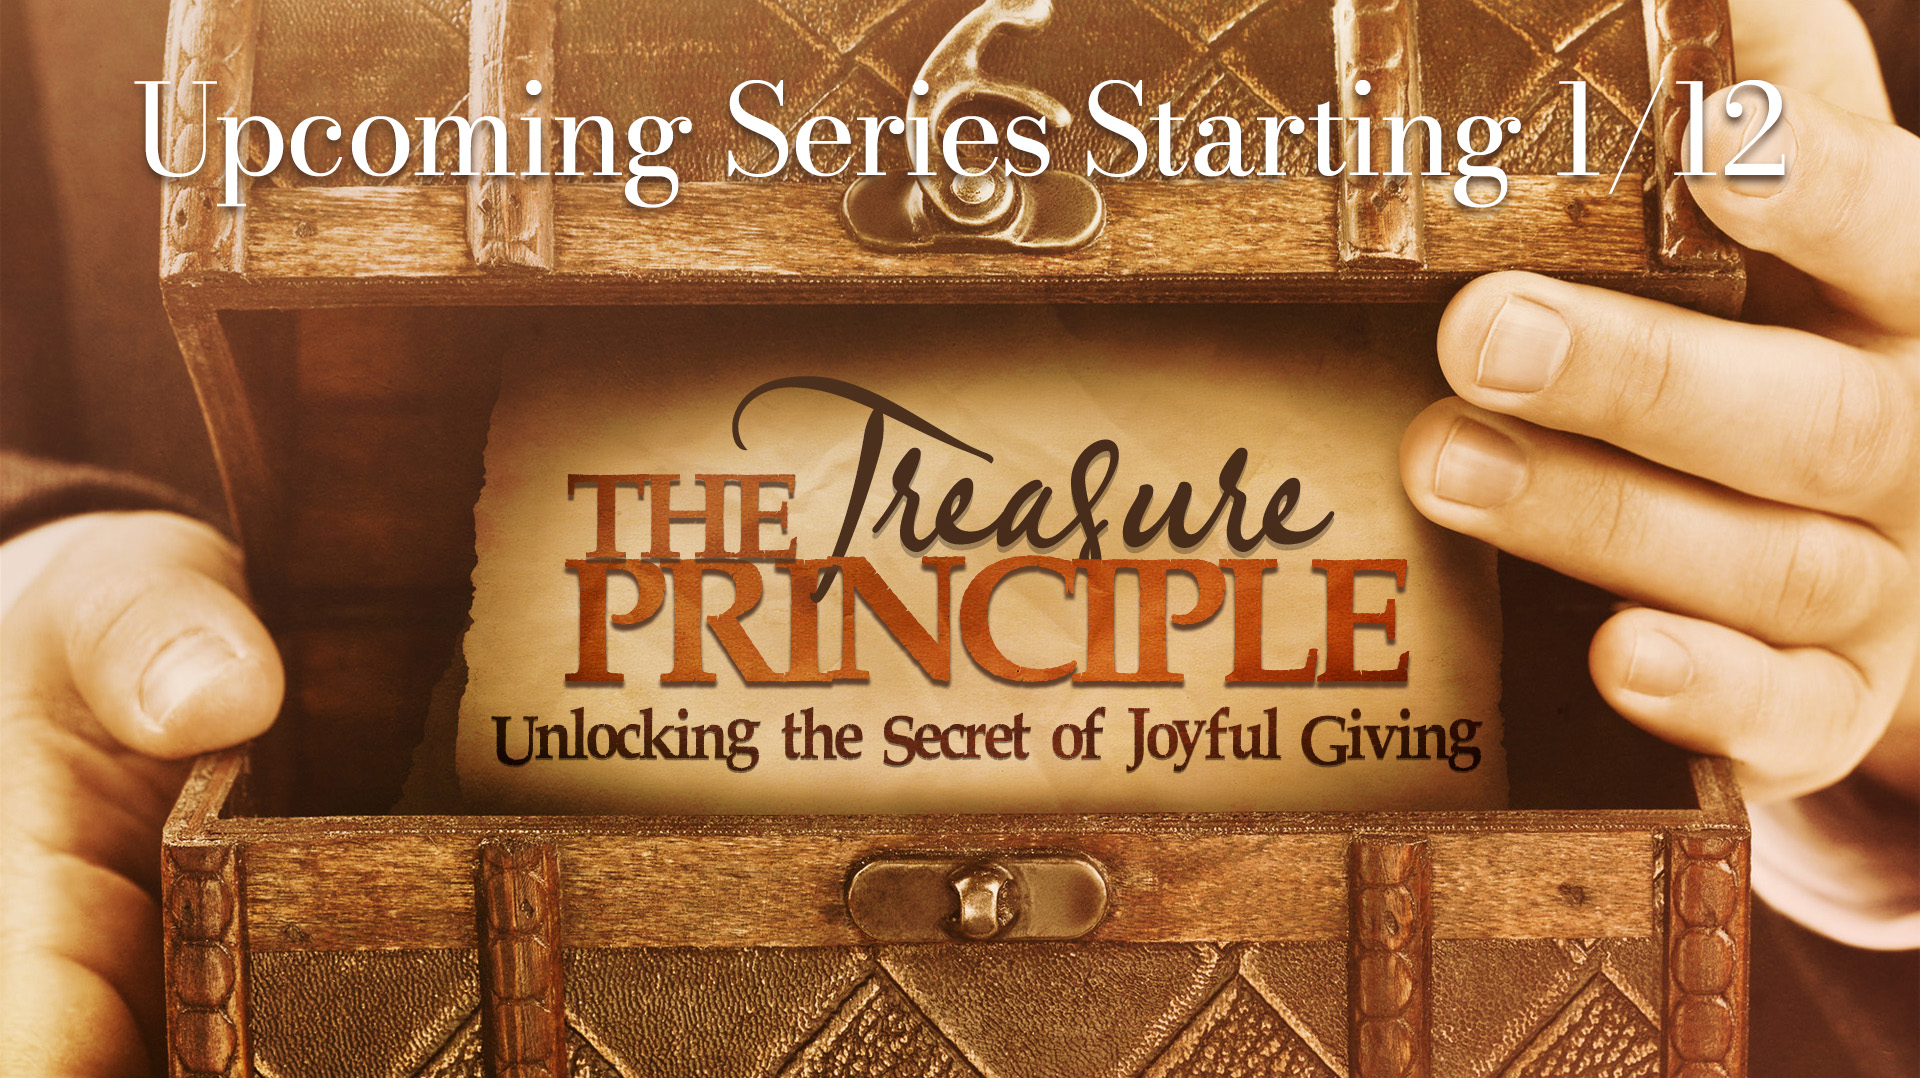 The Treasure Principle - Unlocking the Secret of Joyful Giving